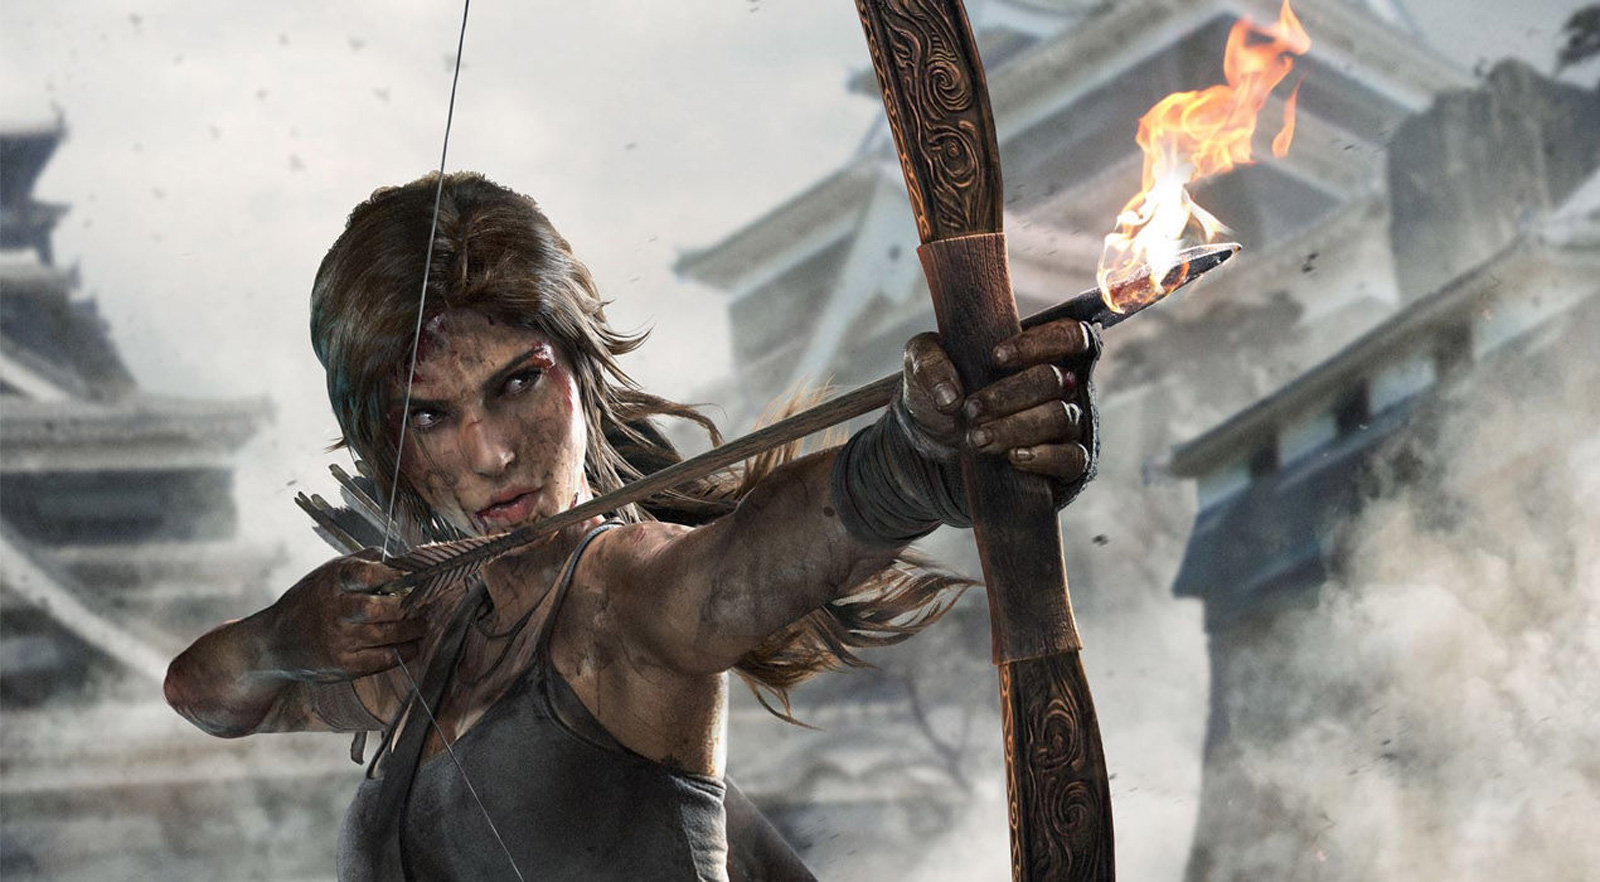 Tomb Raider Movie Will Be Based On 2013 Game Reboot Says Alicia